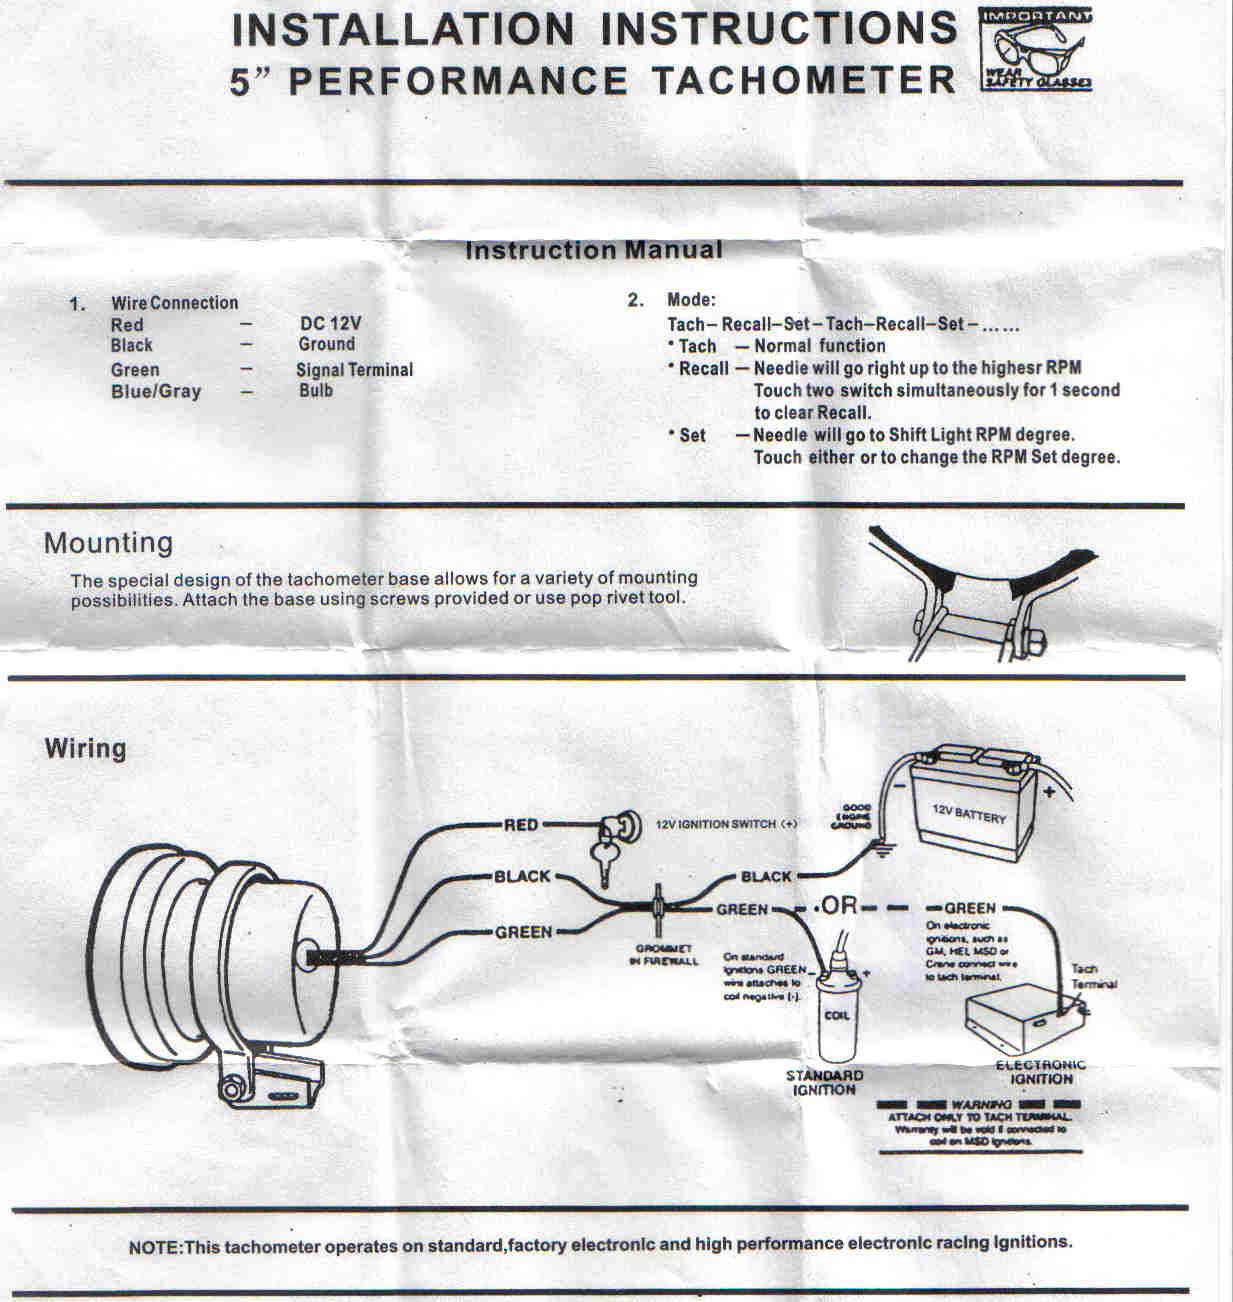 post 39133 1196591761 help wiring a monster tacho cosmetic, styling & respray sau 5 tachometer wiring diagram at panicattacktreatment.co